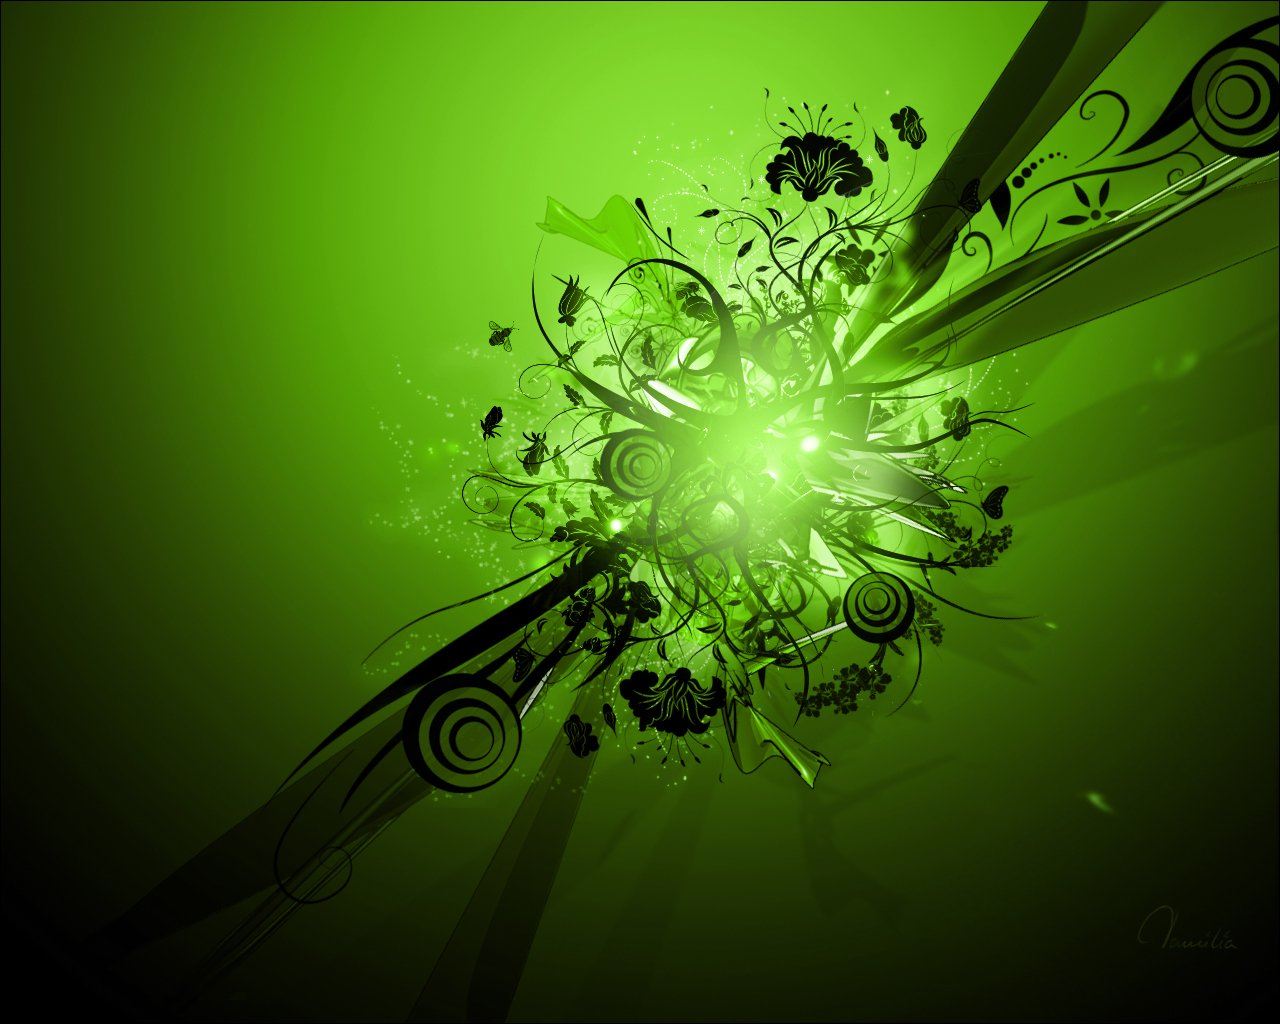 Best Green wallpaper HDComputer Wallpaper Wallpaper Downloads 1280x1024